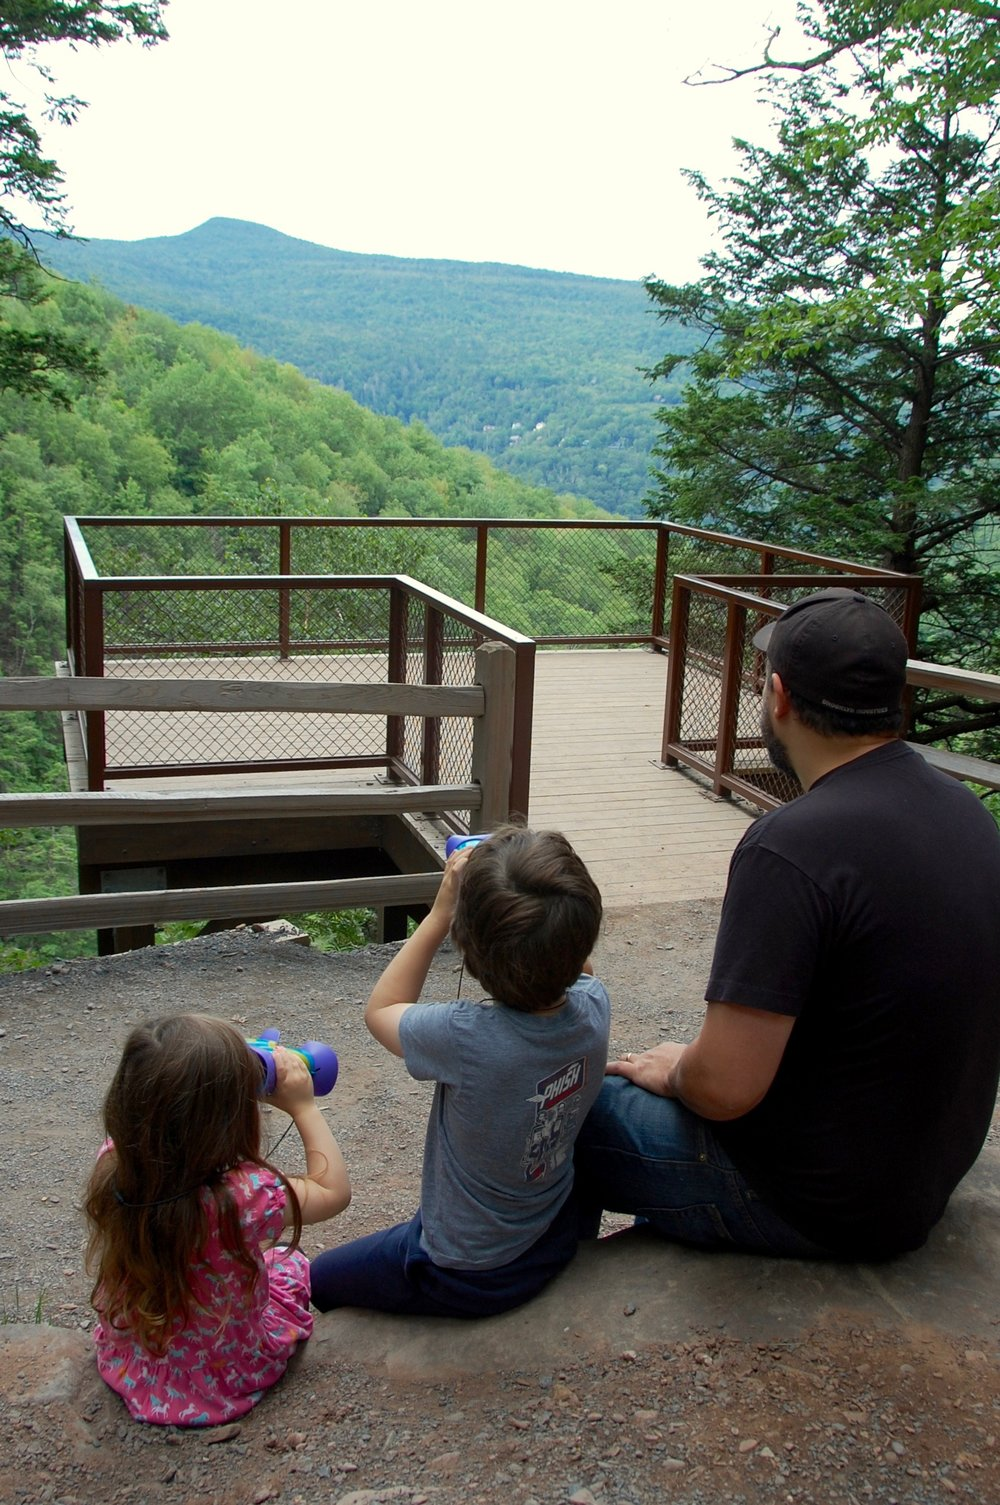 Kaaterskill Falls viewing platform